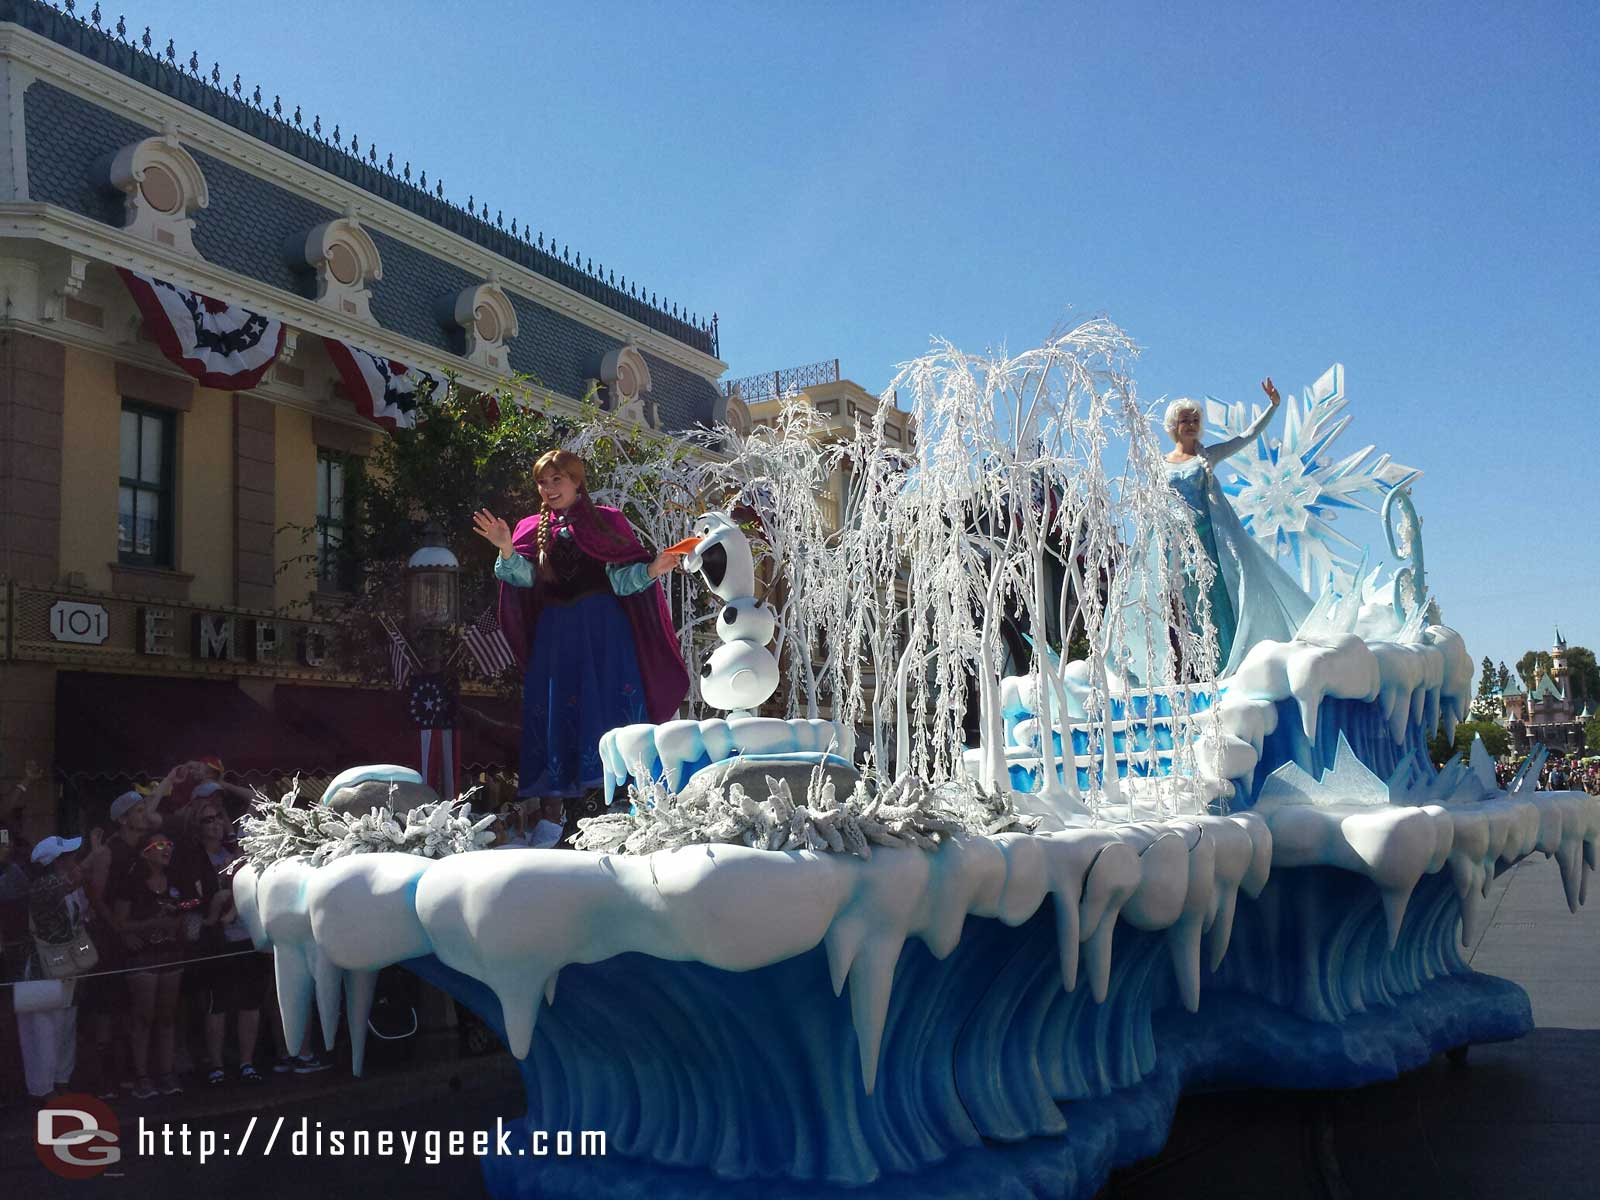 Anna Elsa & Olaf #Frozen pre-parade at #Disneyland